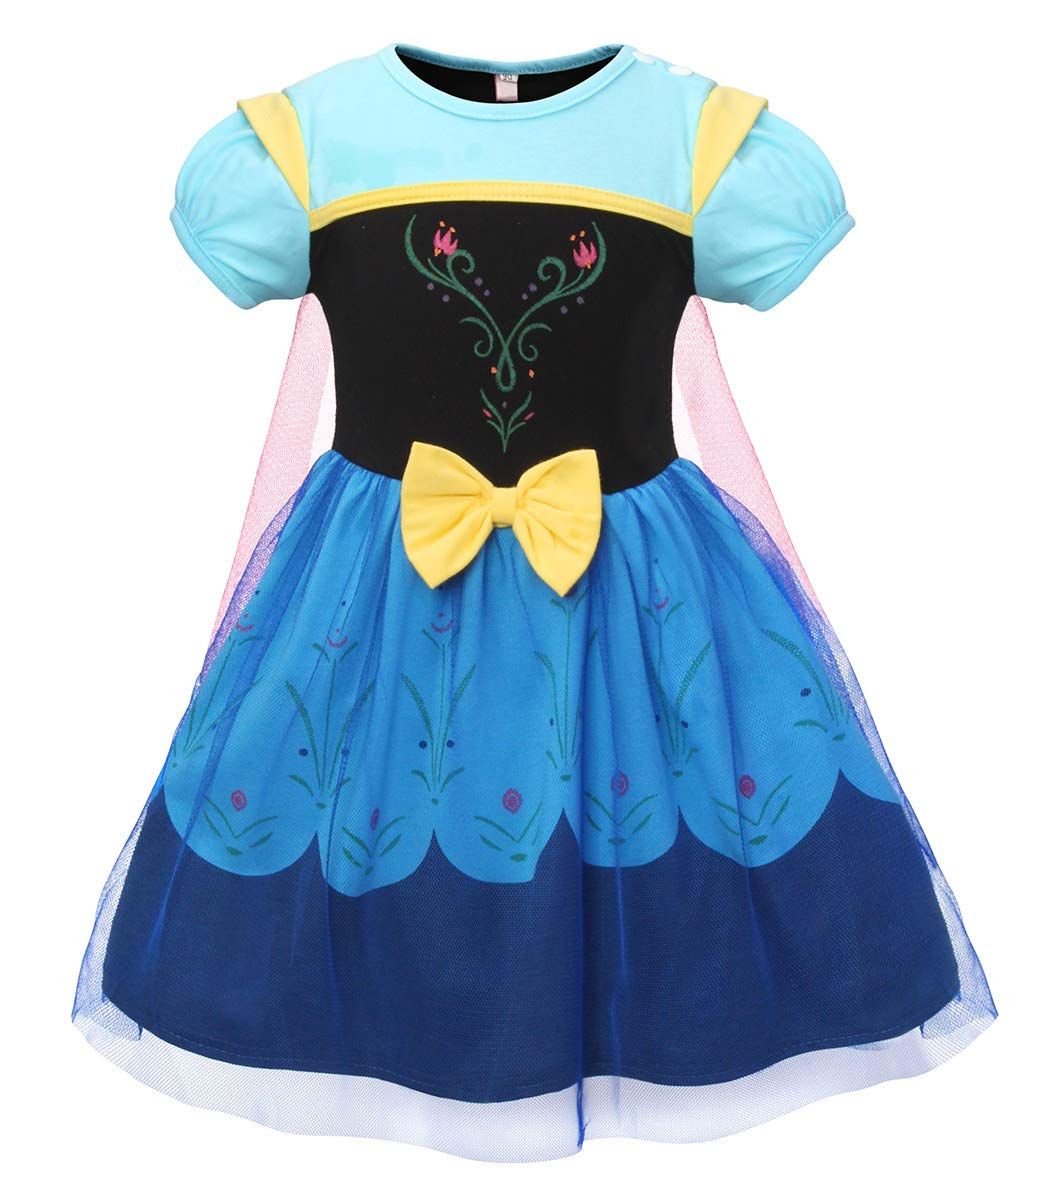 Cotrio Little Girls Anna Dress Toddler Princess Dress up Halloween Costume Nightgowns Sleepwear Dresses Size 6 (120, 5-6Years, with Cape)